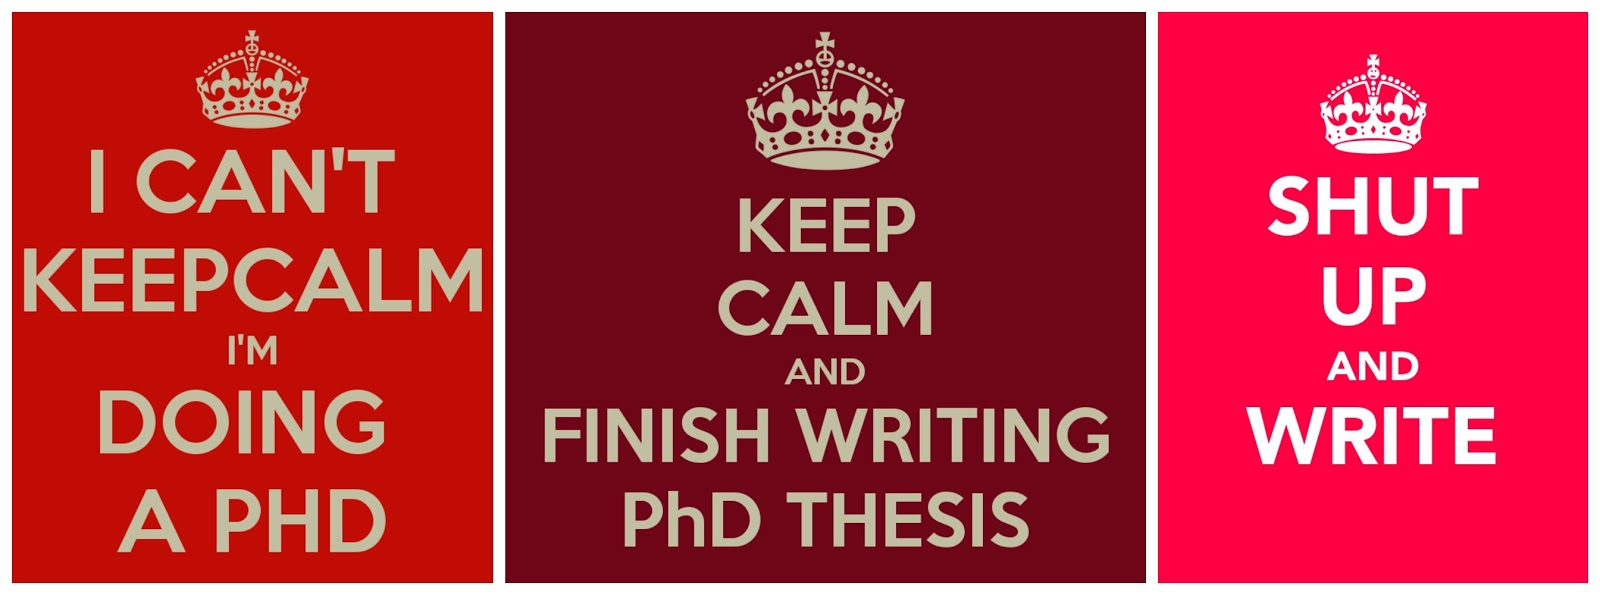 thesis ac uk